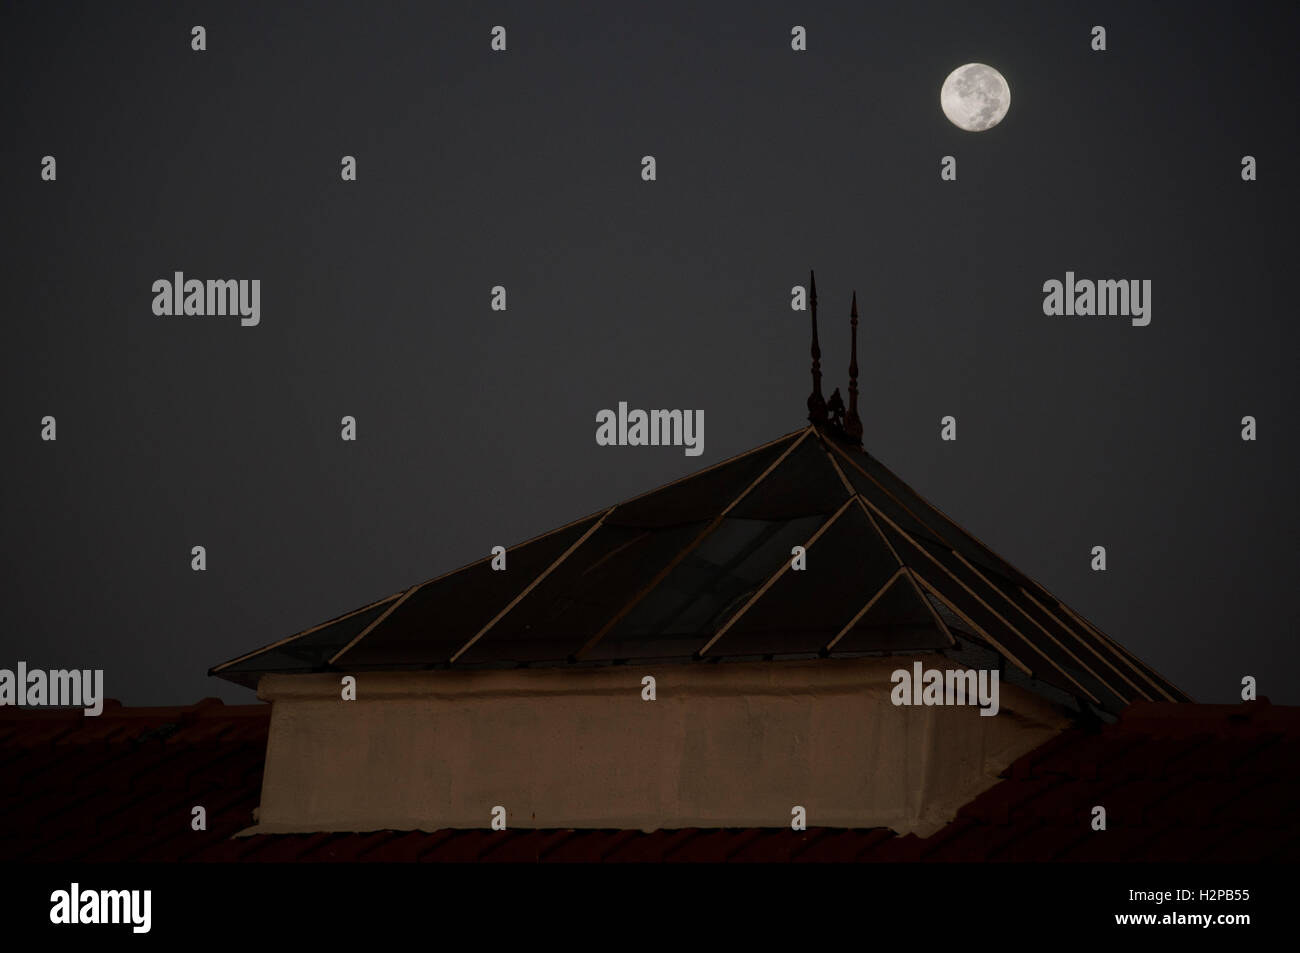 Full moon over the roof - Stock Image